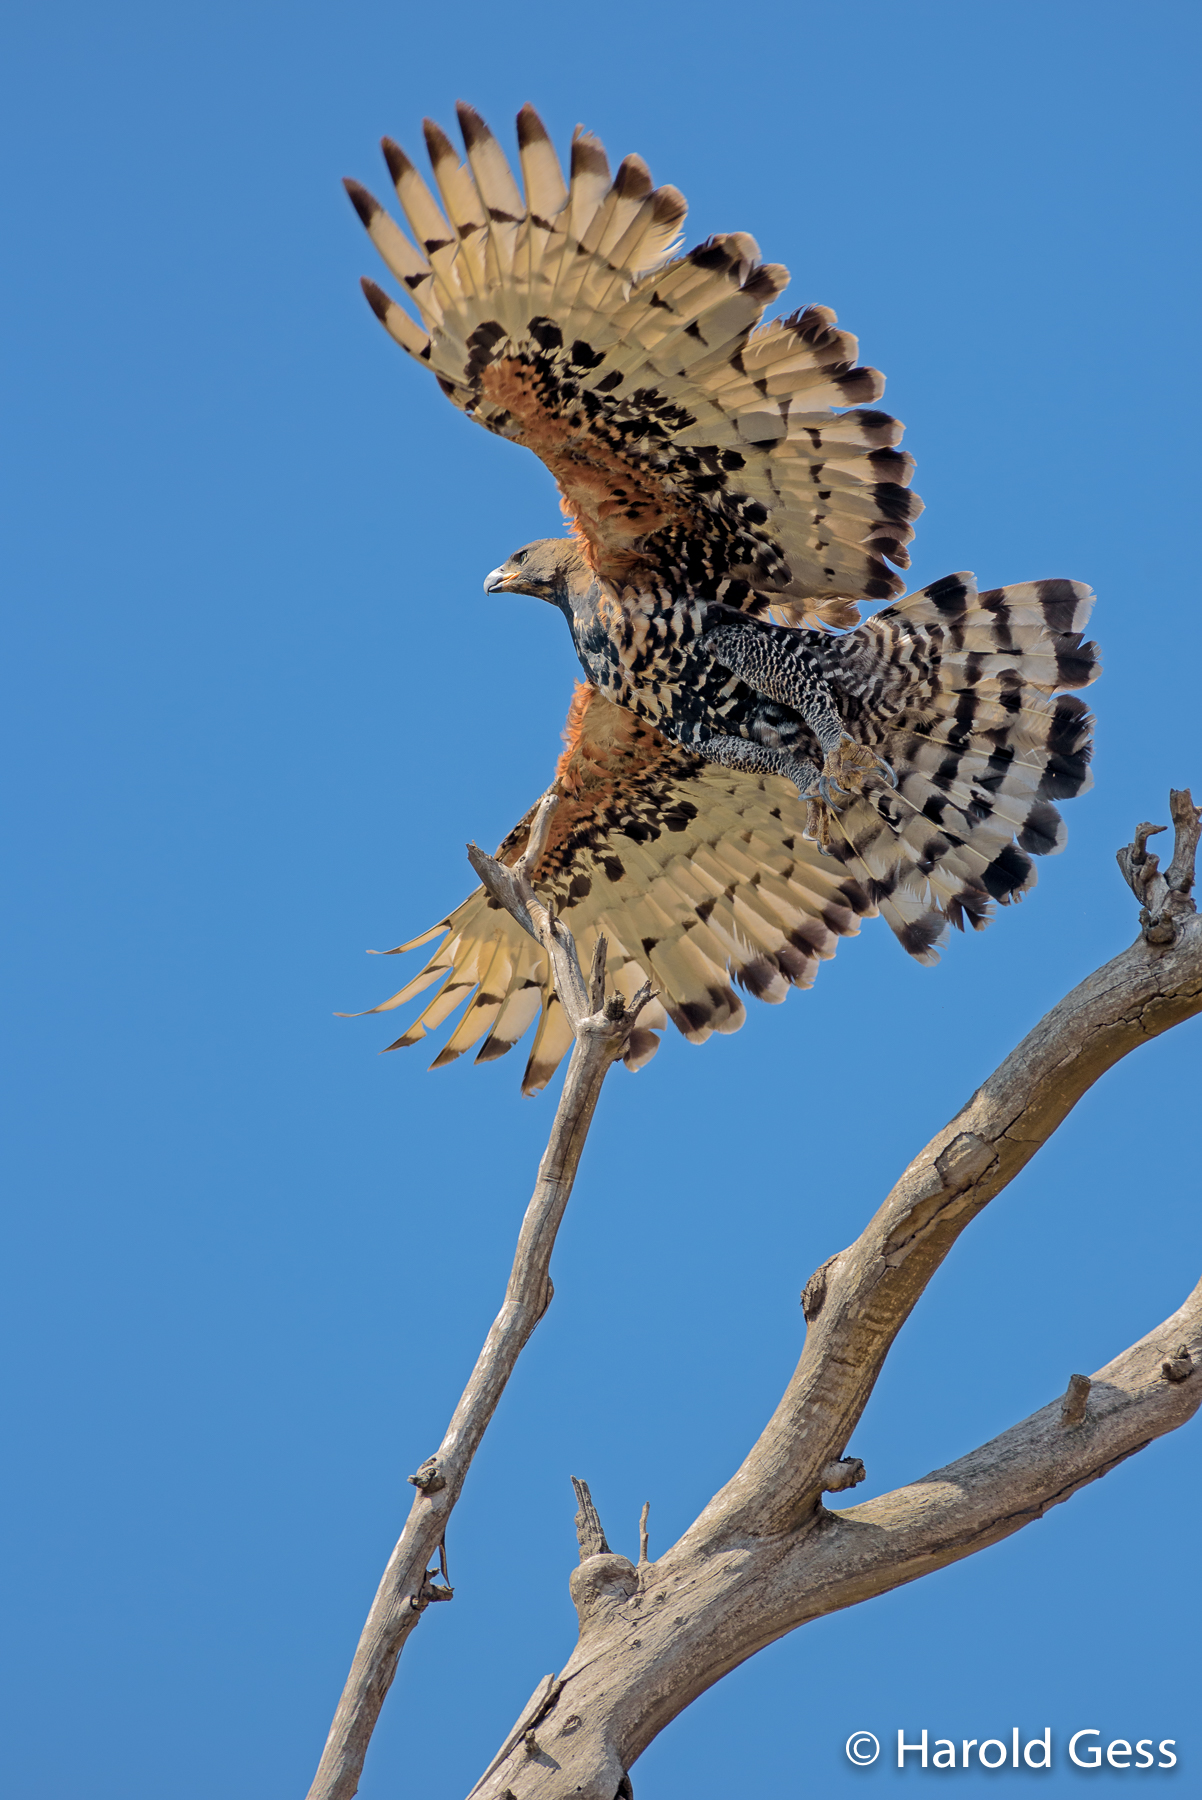 African Crowned Eagle (Stephanoaetus coronatus), between Bedford and Tarkastad, Eastern Cape, March 2019.